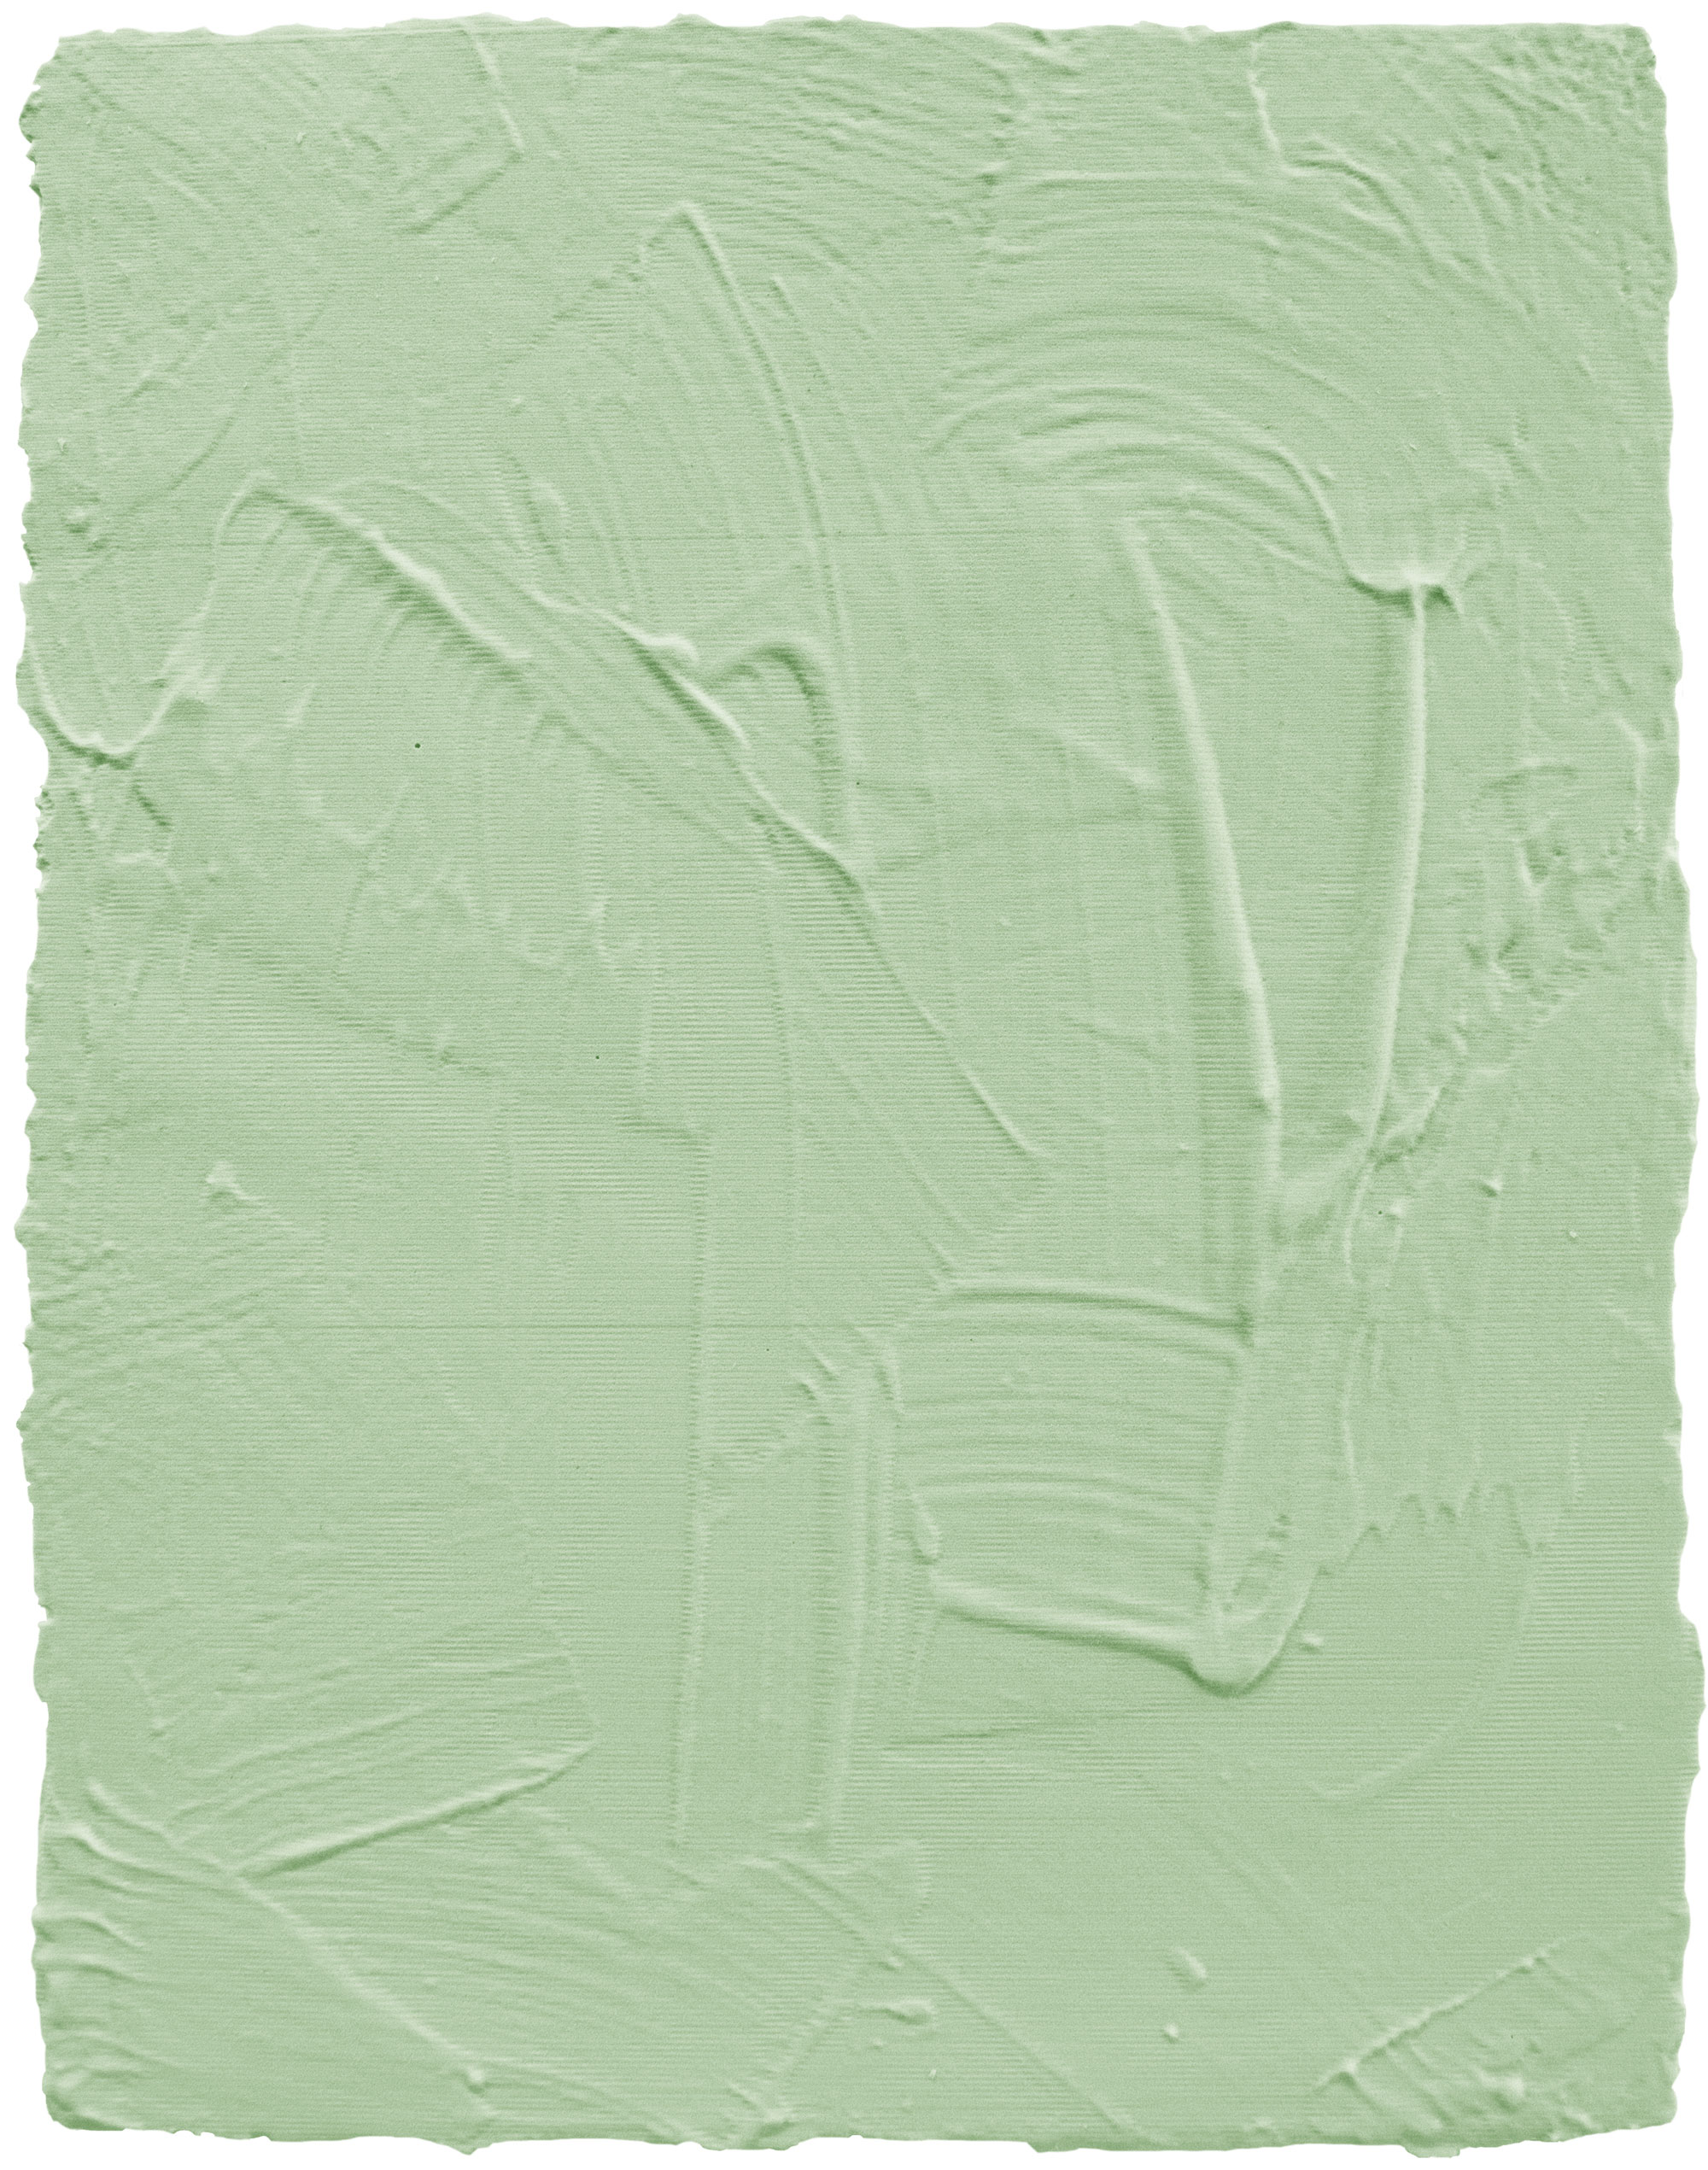 Untitled (Abstract Painting) Green